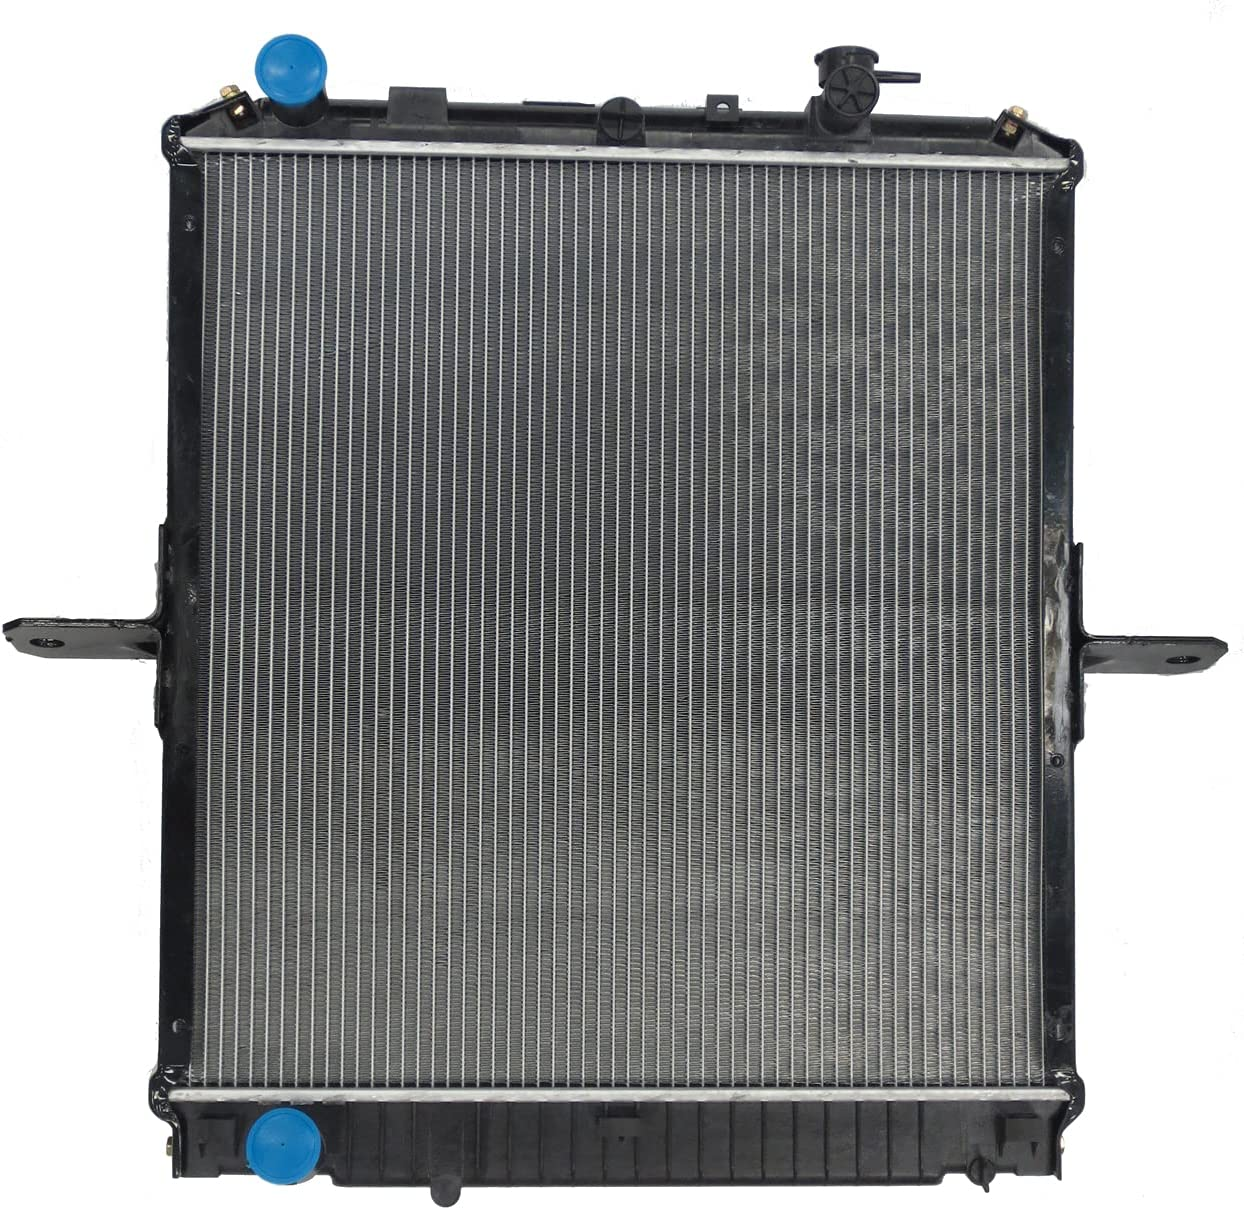 NEW Replacement Radiator for 04-10 Isuzu GM High New mail order quality NQR NRR Chevy NPR